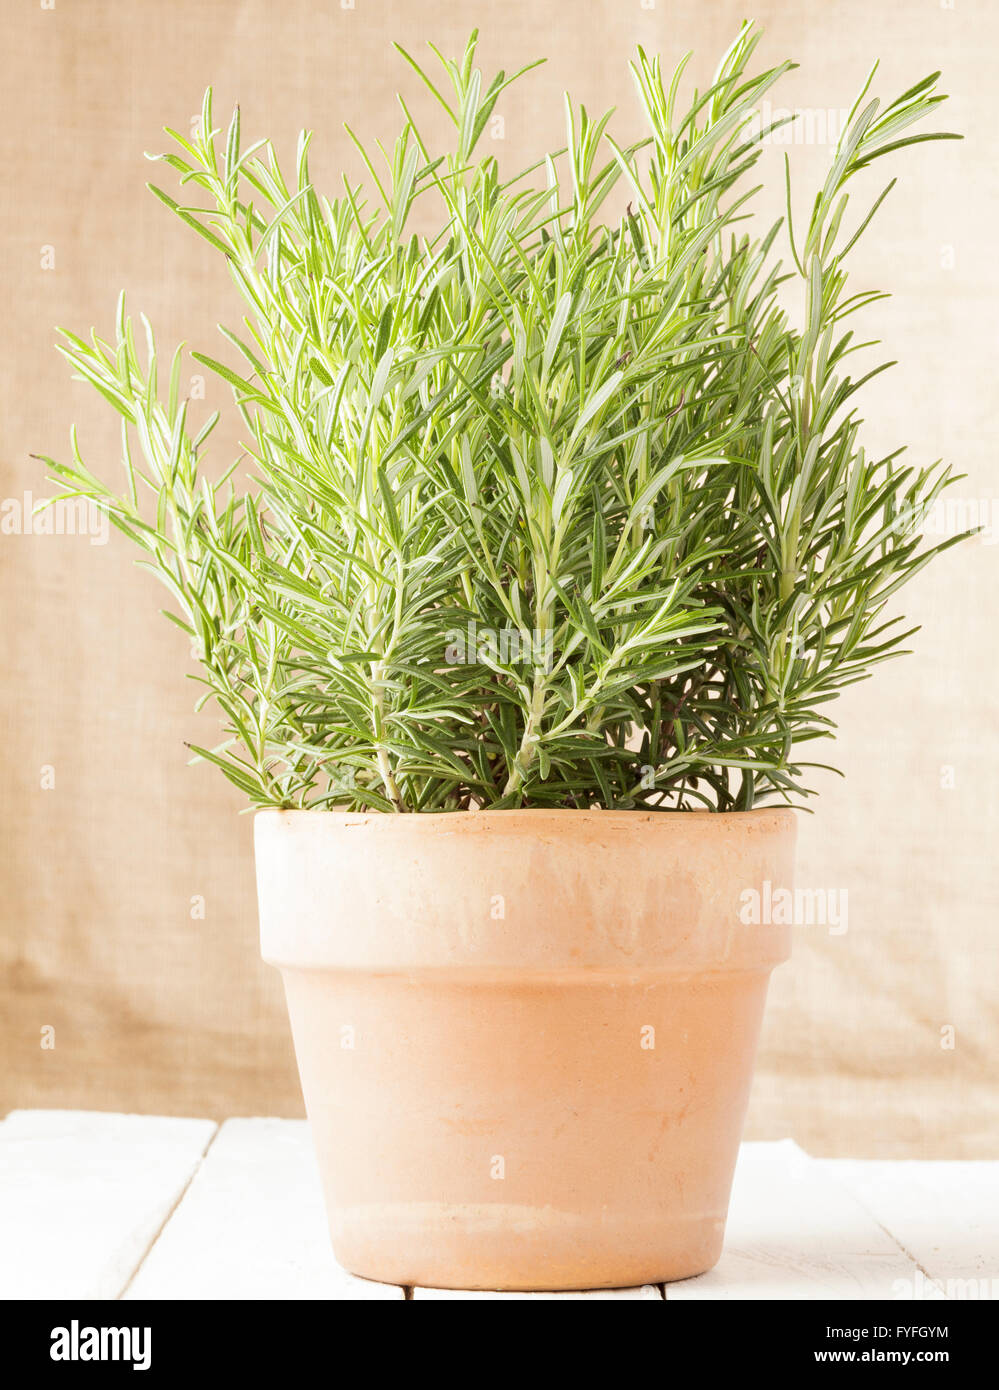 Rosmarinus officinalis, Rosemary plant in pot - Stock Image